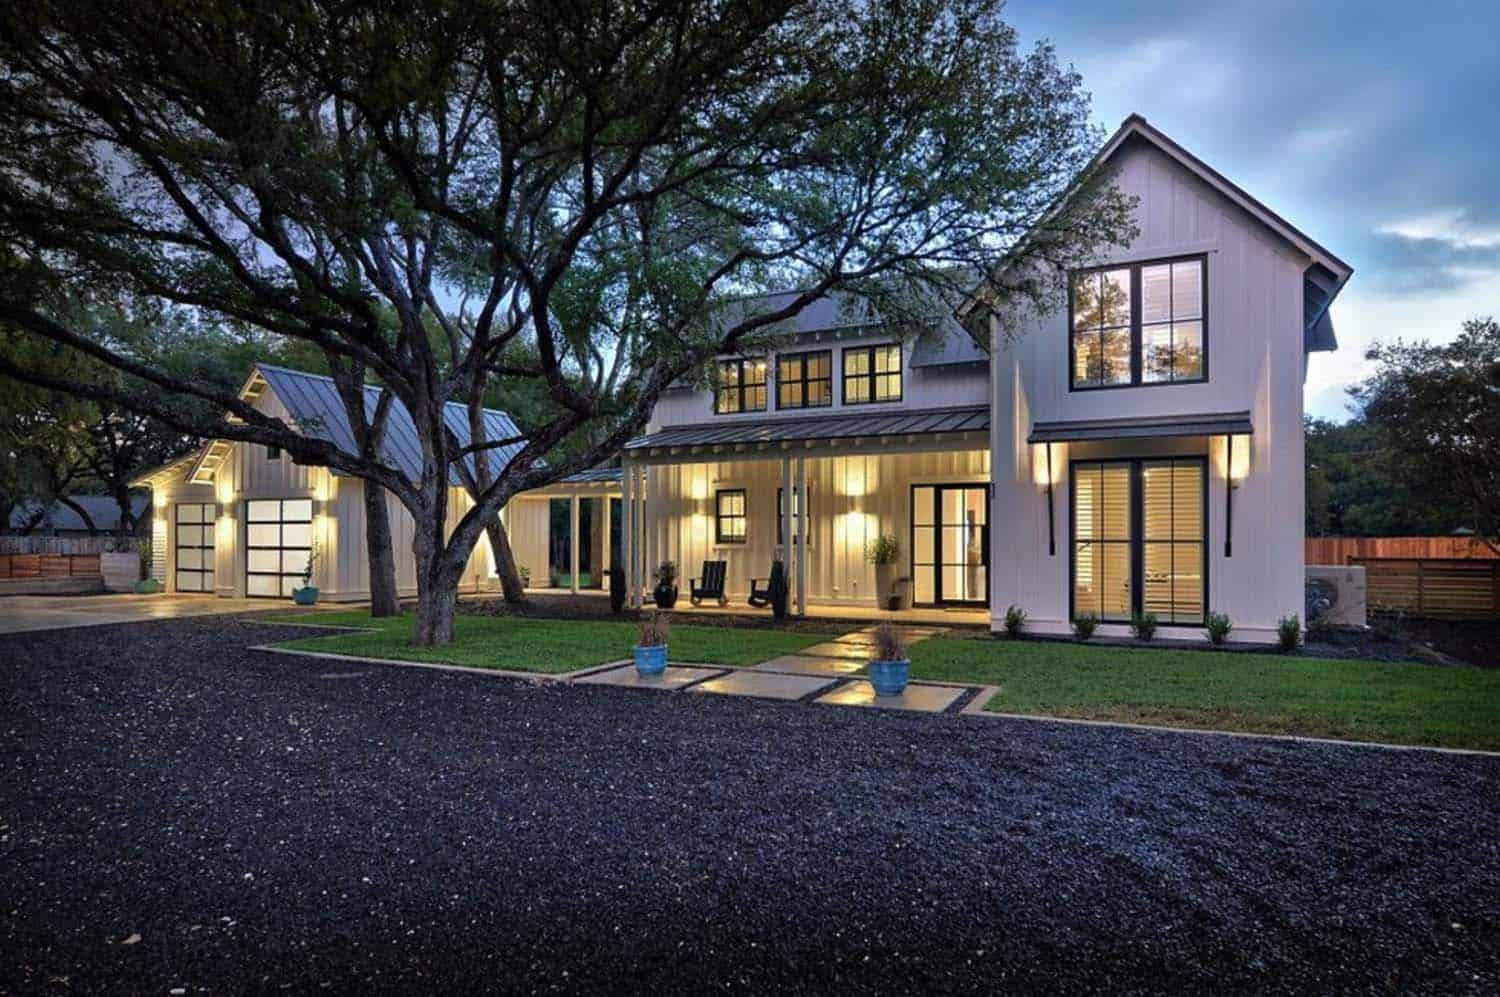 Modernized texas farmhouse filled with eye catching details for Modern farmhouse architecture plans